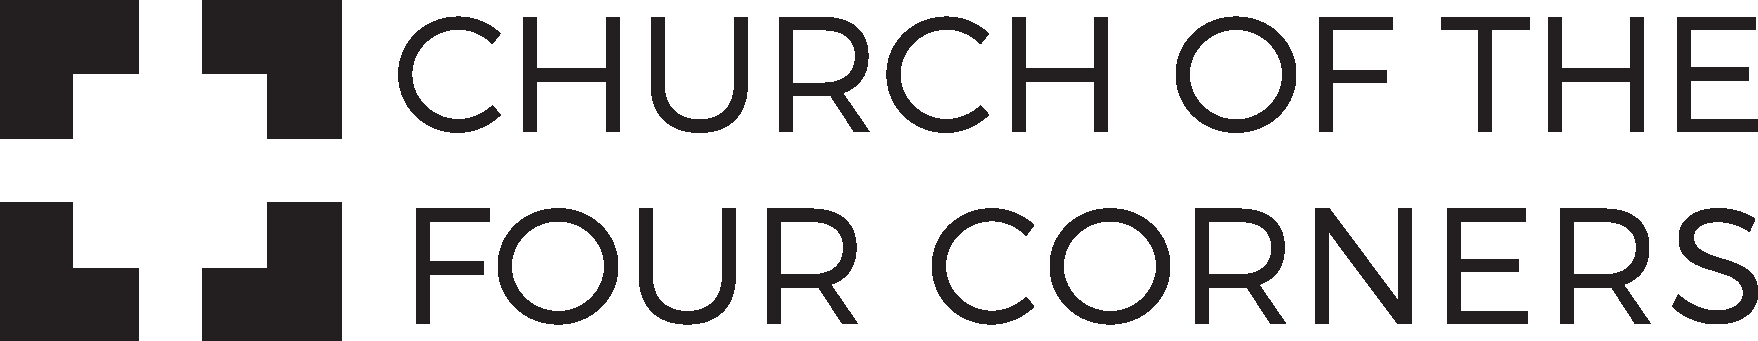 Church of the Four Corners